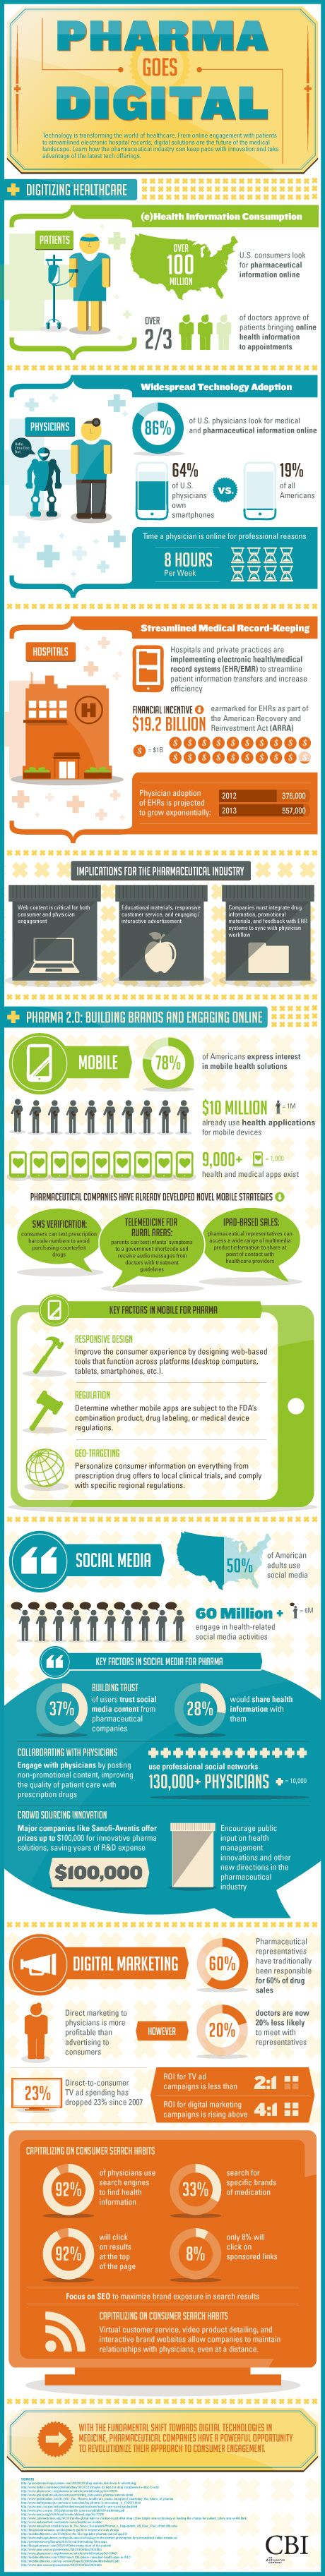 Pharma Goes Digital - Technology is transforming the world of health care. #infographic